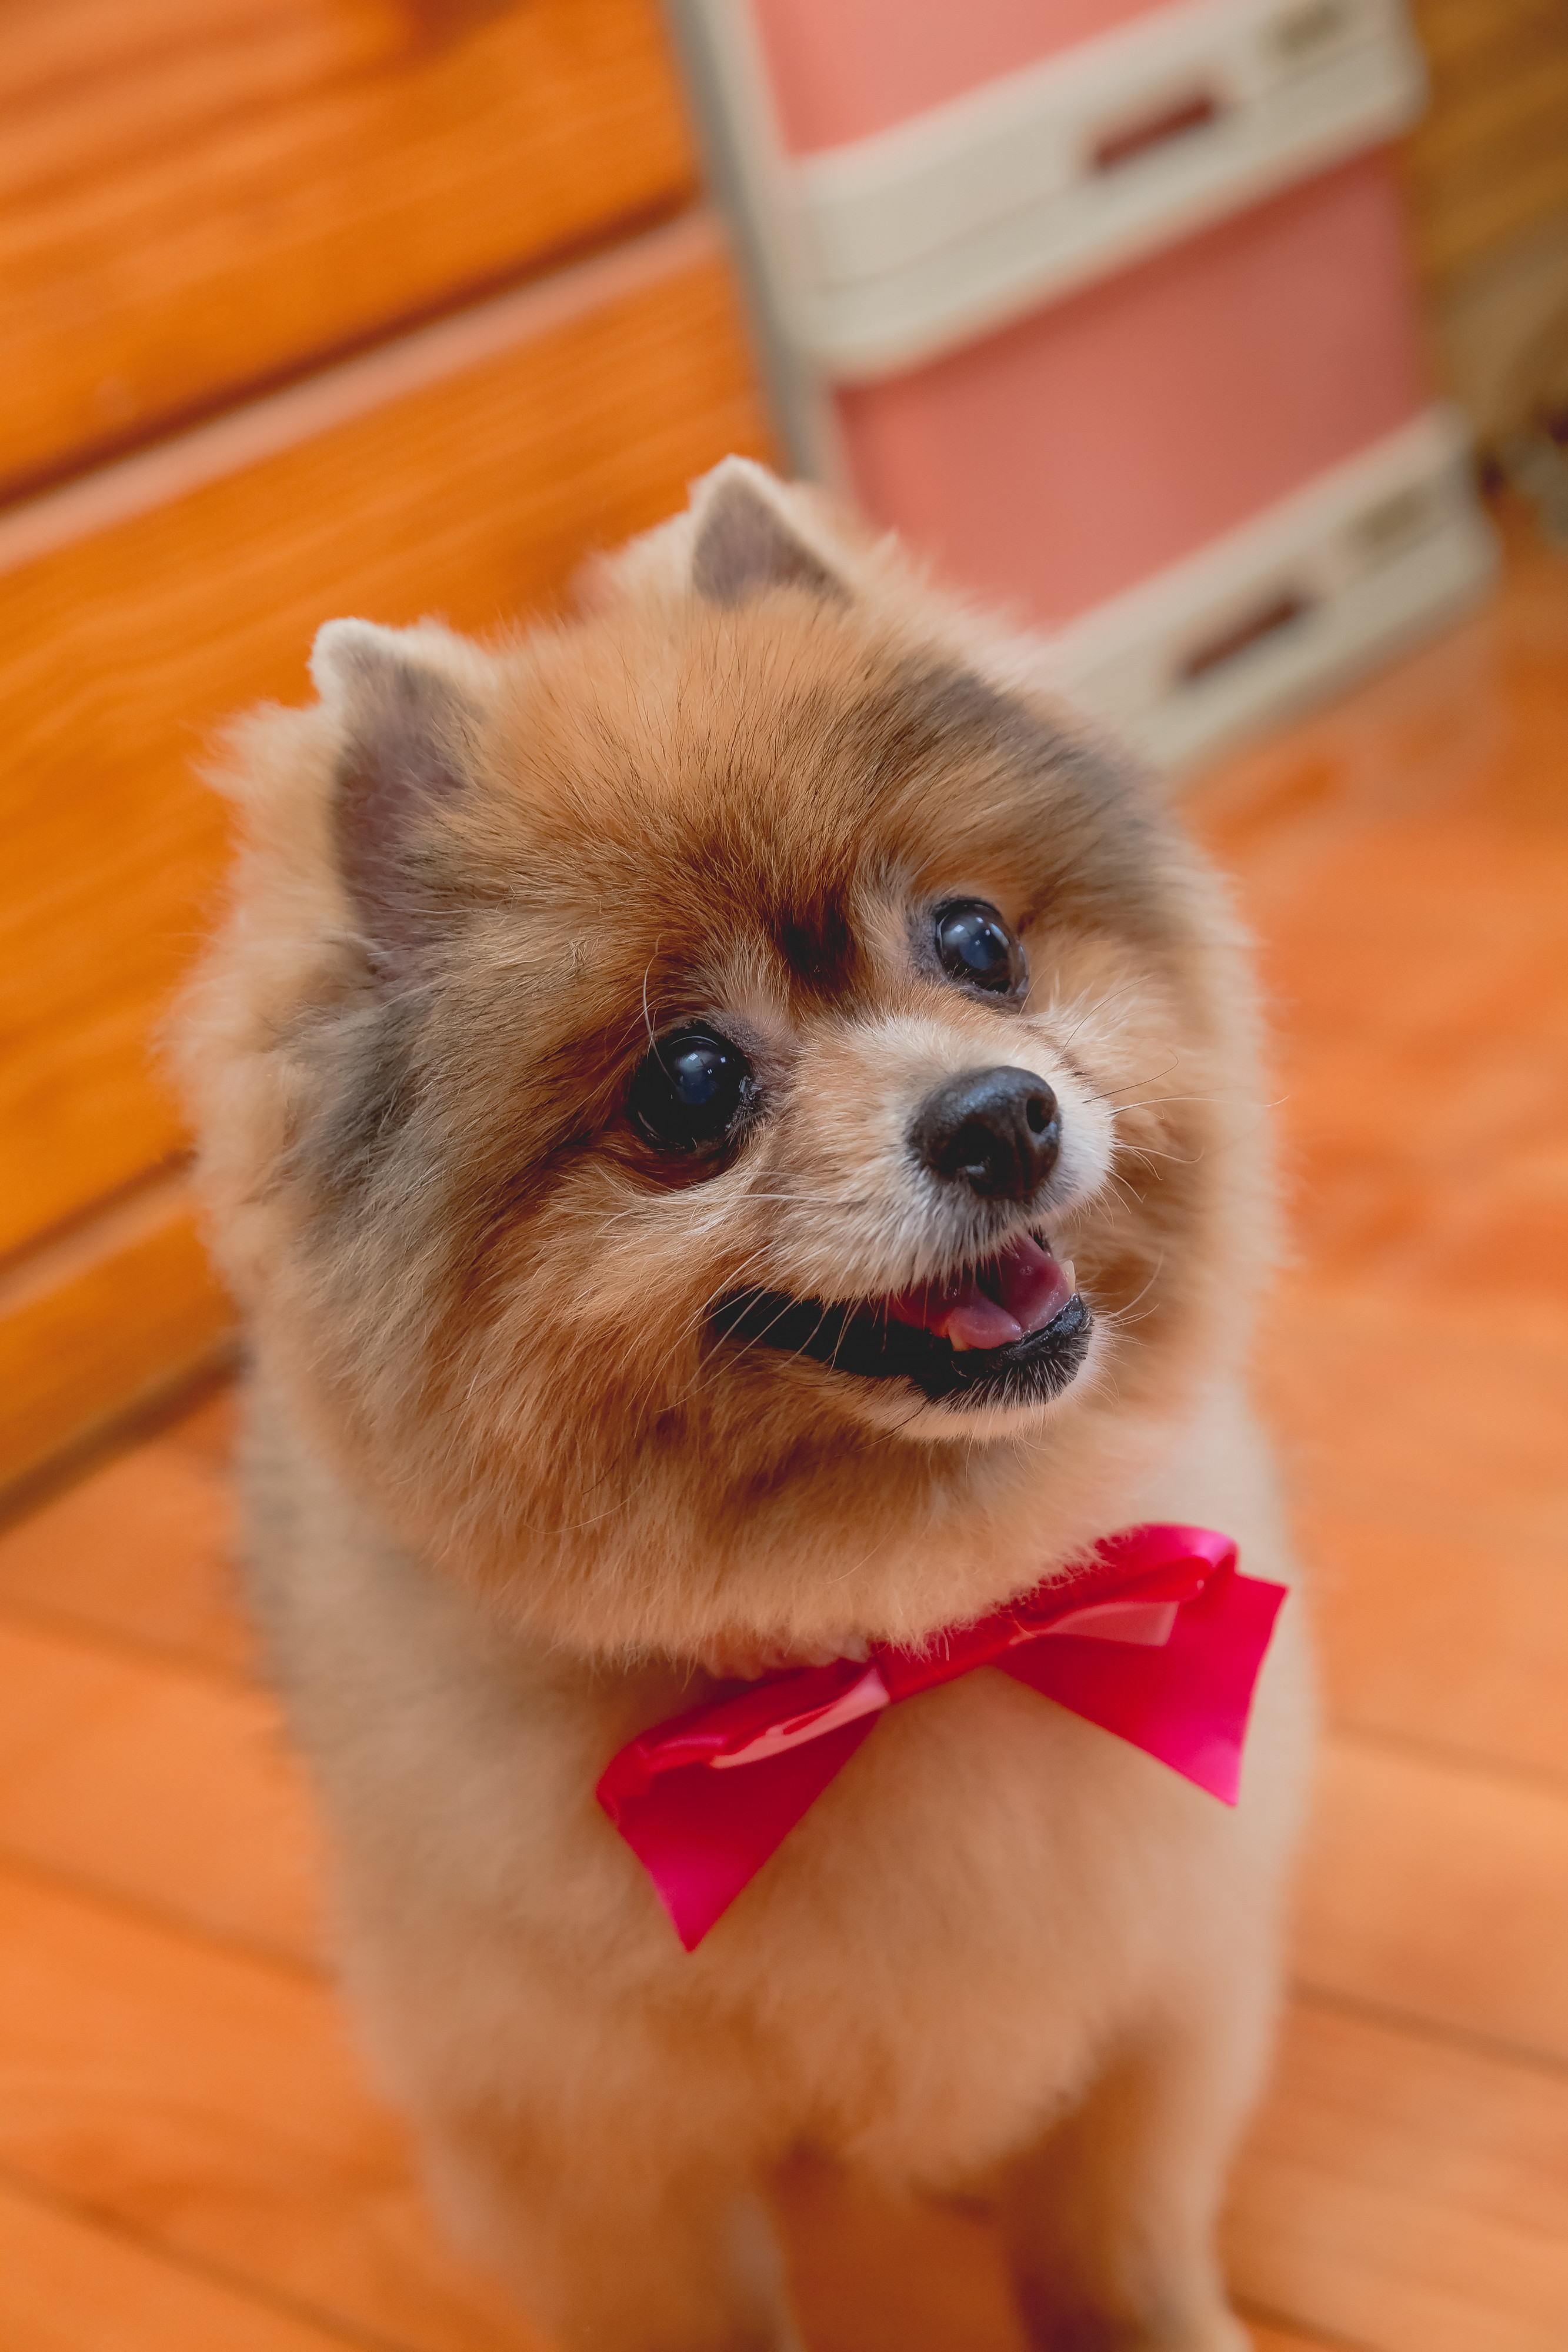 74942 download wallpaper Animals, Spitz, Dog, Protruding Tongue, Tongue Stuck Out, Bow screensavers and pictures for free